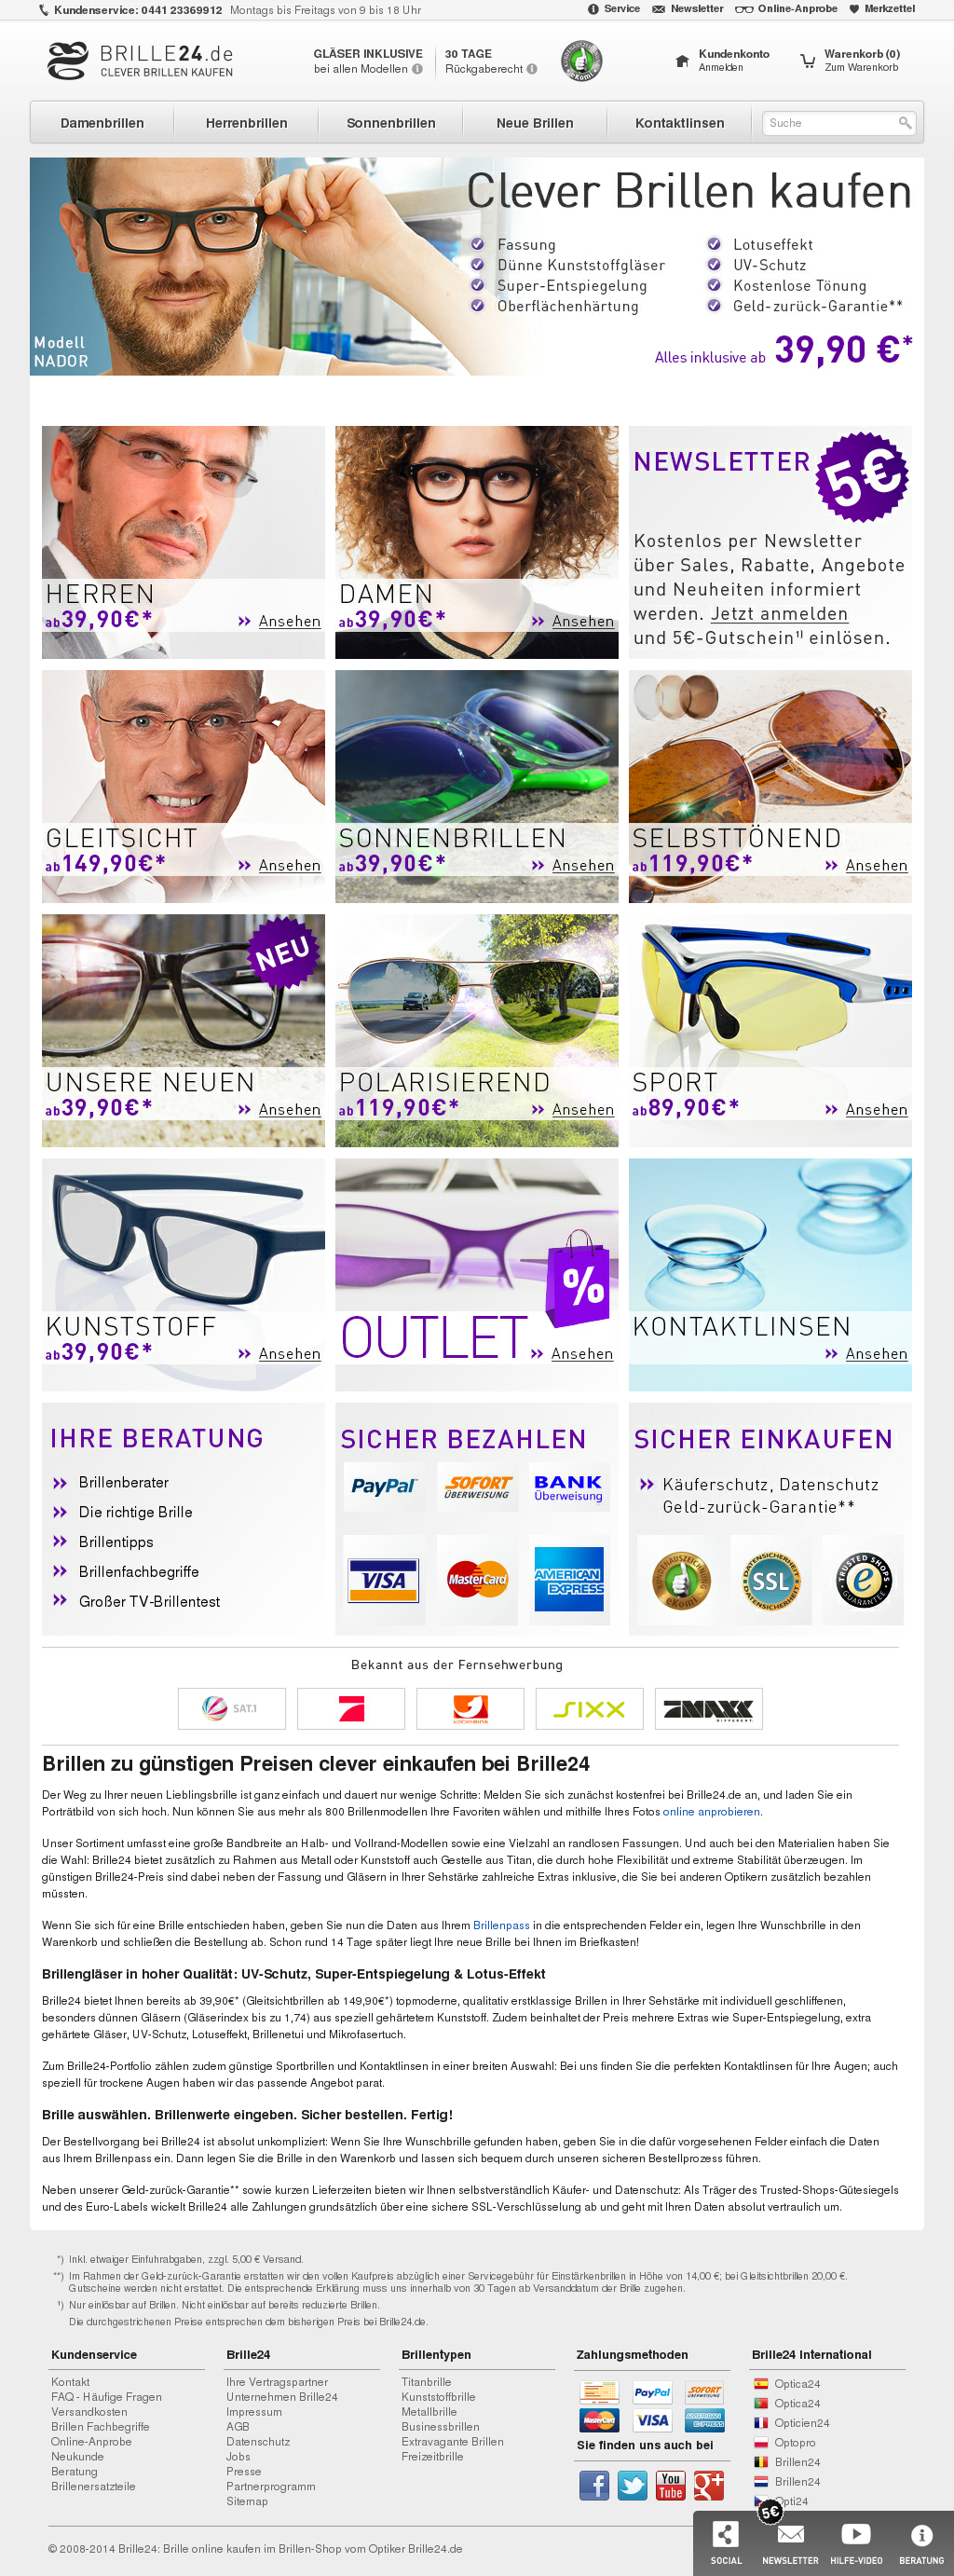 Brille24 Competitors, Revenue and Employees - Owler Company Profile